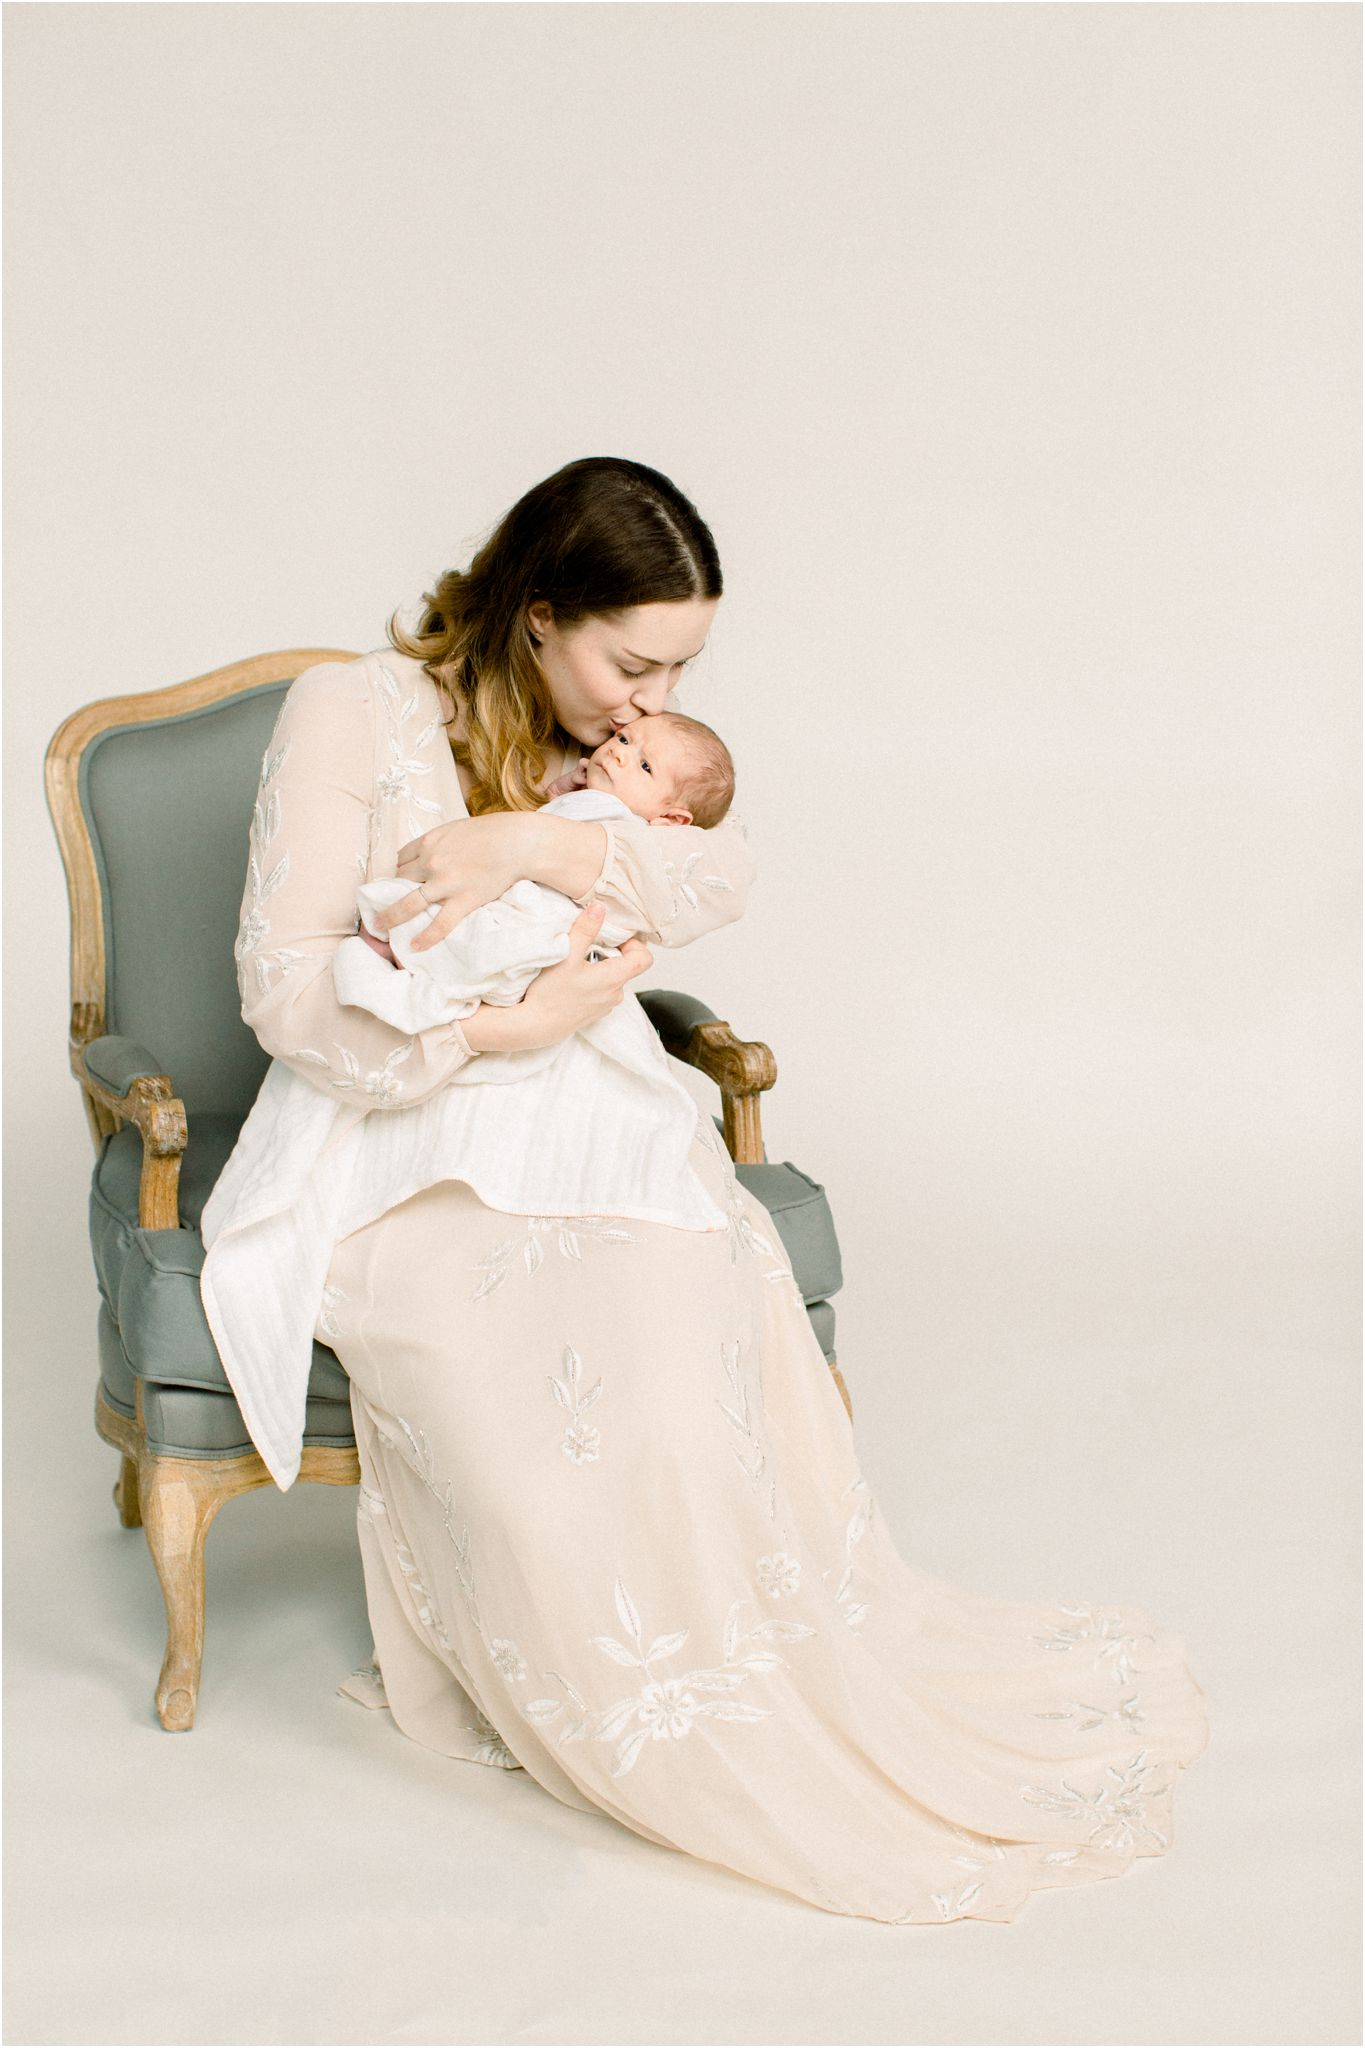 motherhood_portraits_deborah_zoe_photography_00005.JPG